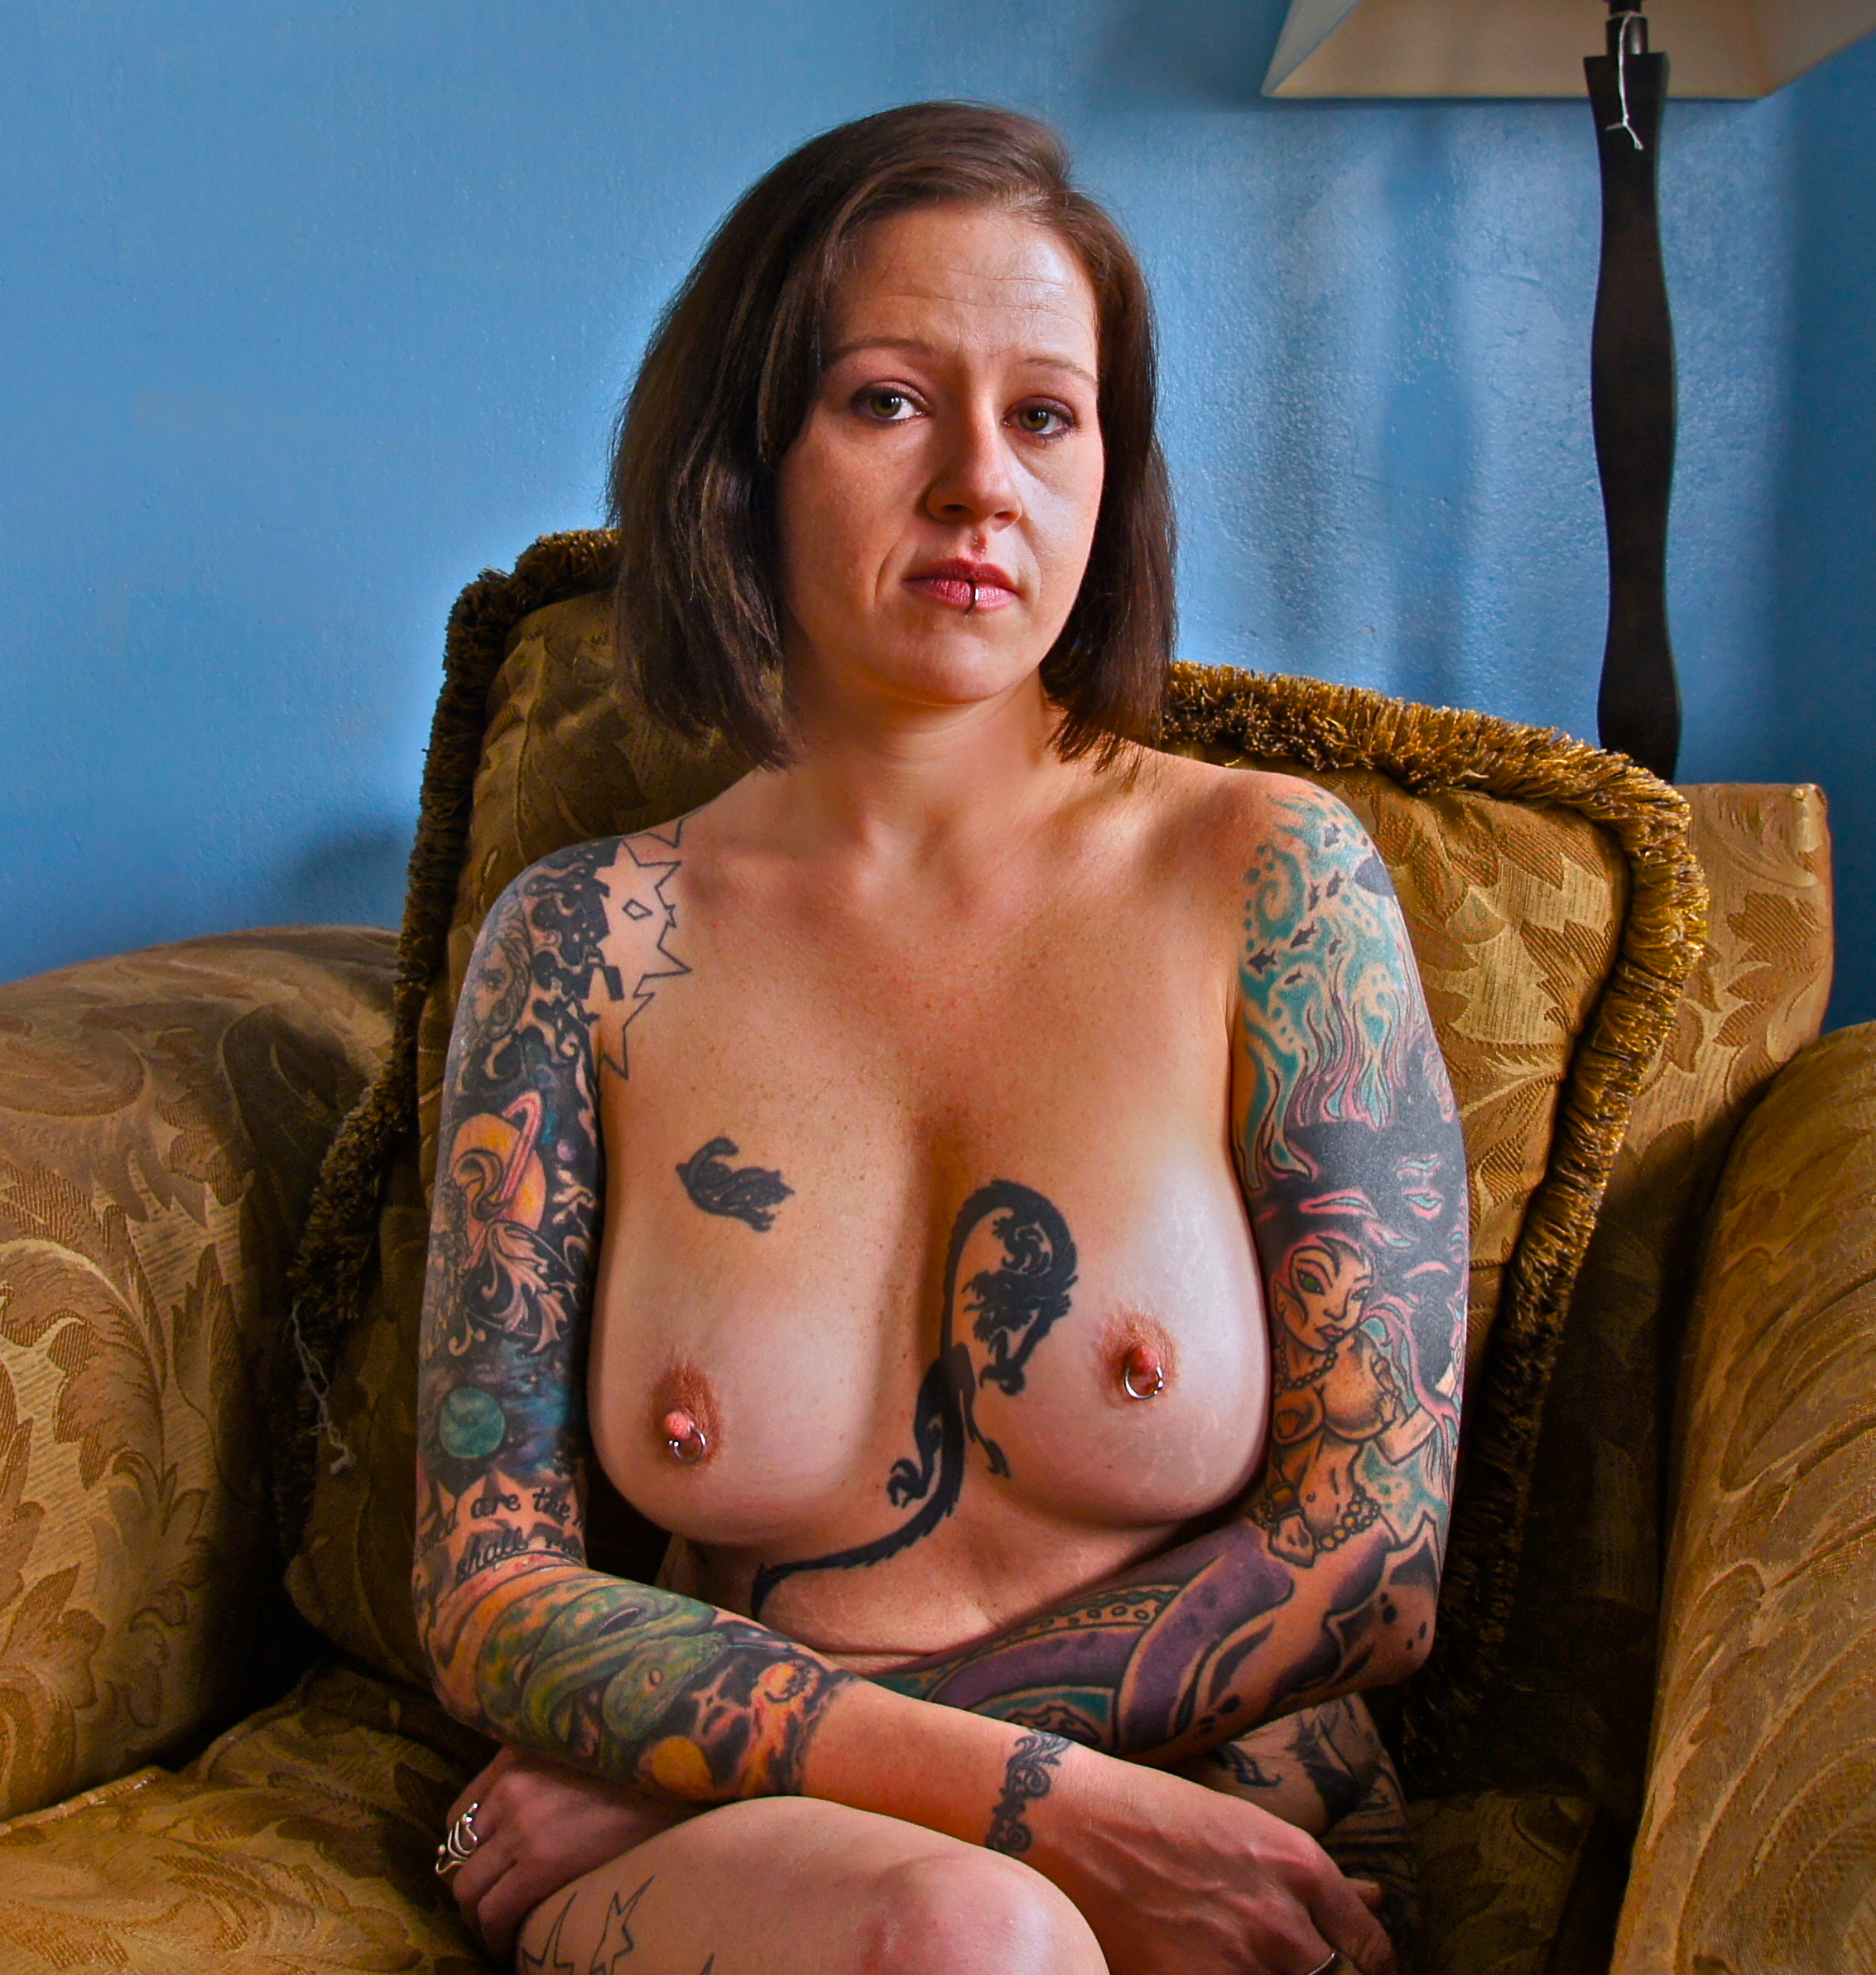 Tattooed woman and piercings